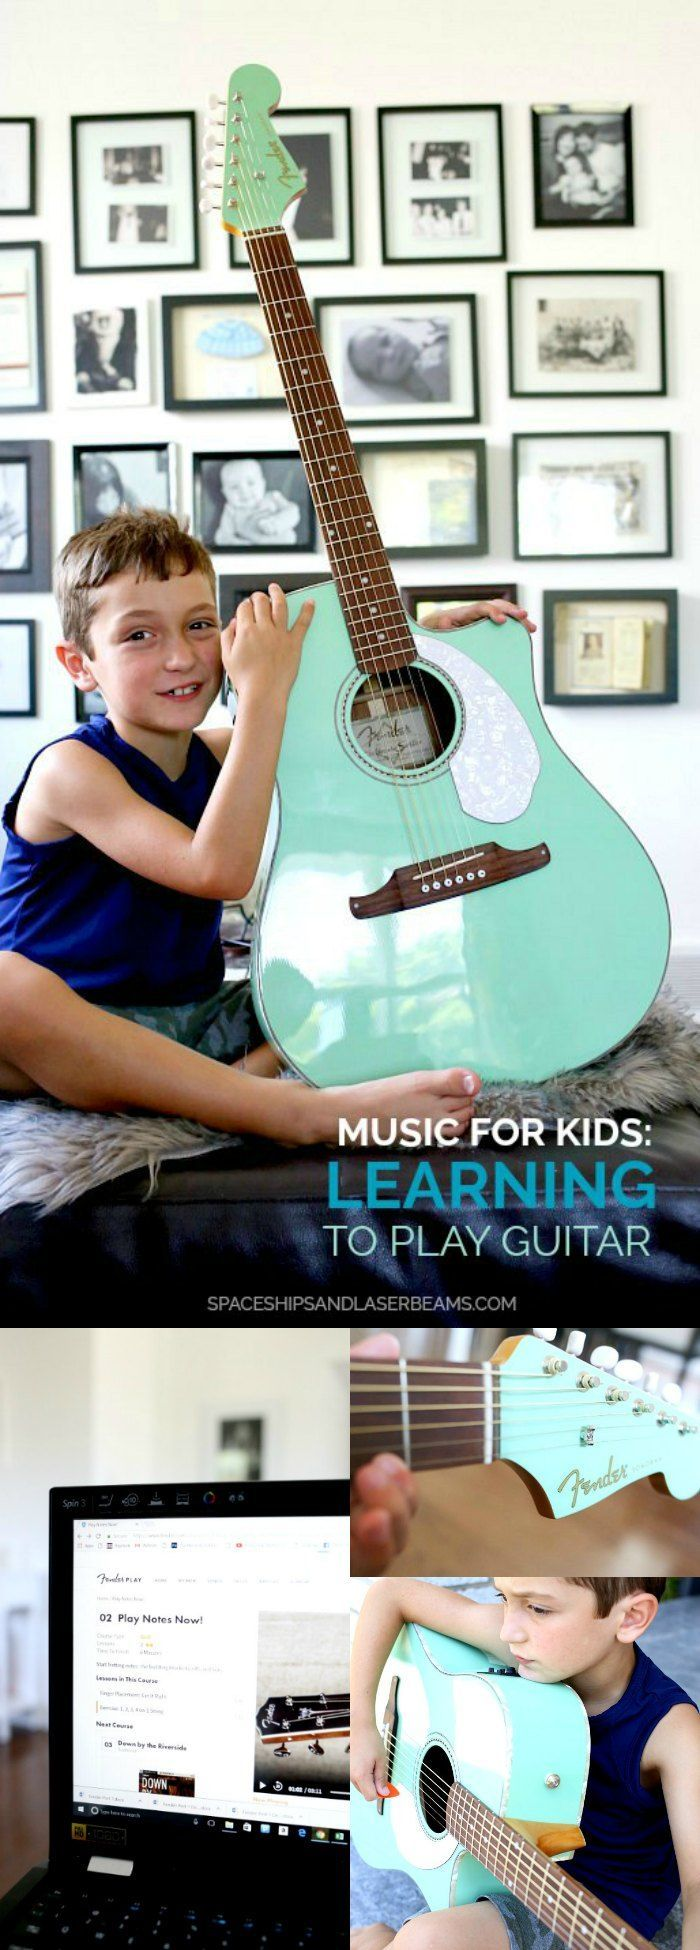 music for kids learning to play guitar fenderplay fender ad best pins on pinterest. Black Bedroom Furniture Sets. Home Design Ideas